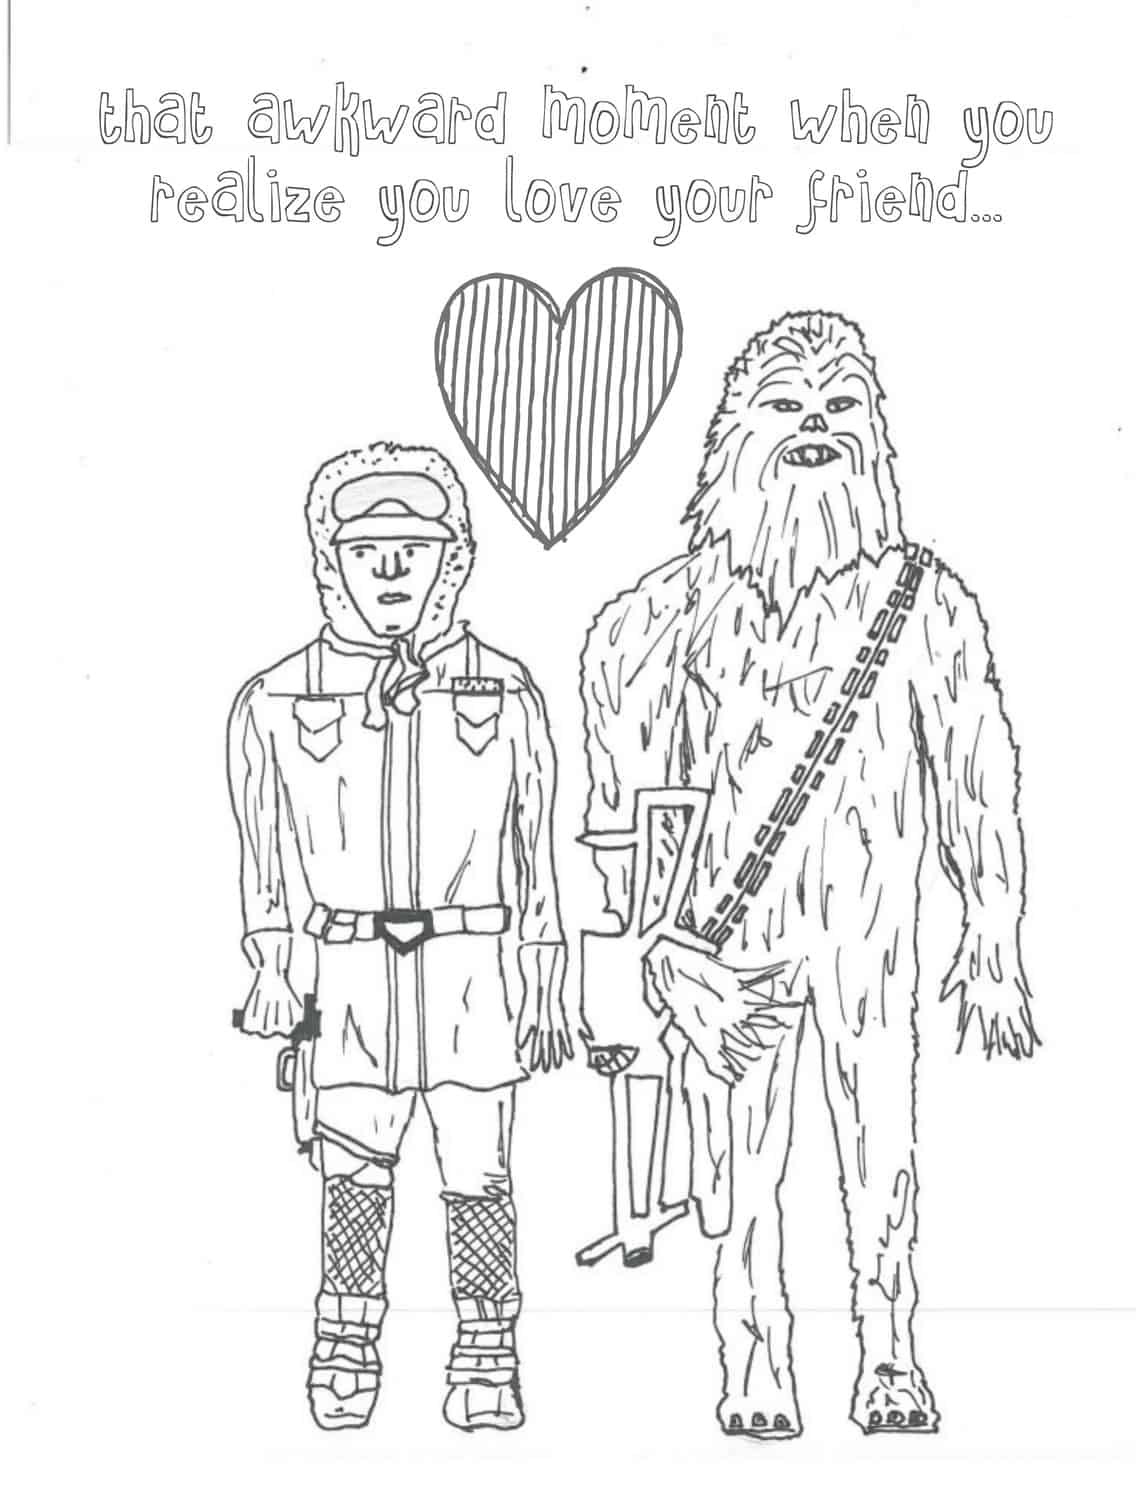 8 More Star Wars Inspired Valentines Coloring Pages Page 5 of 9